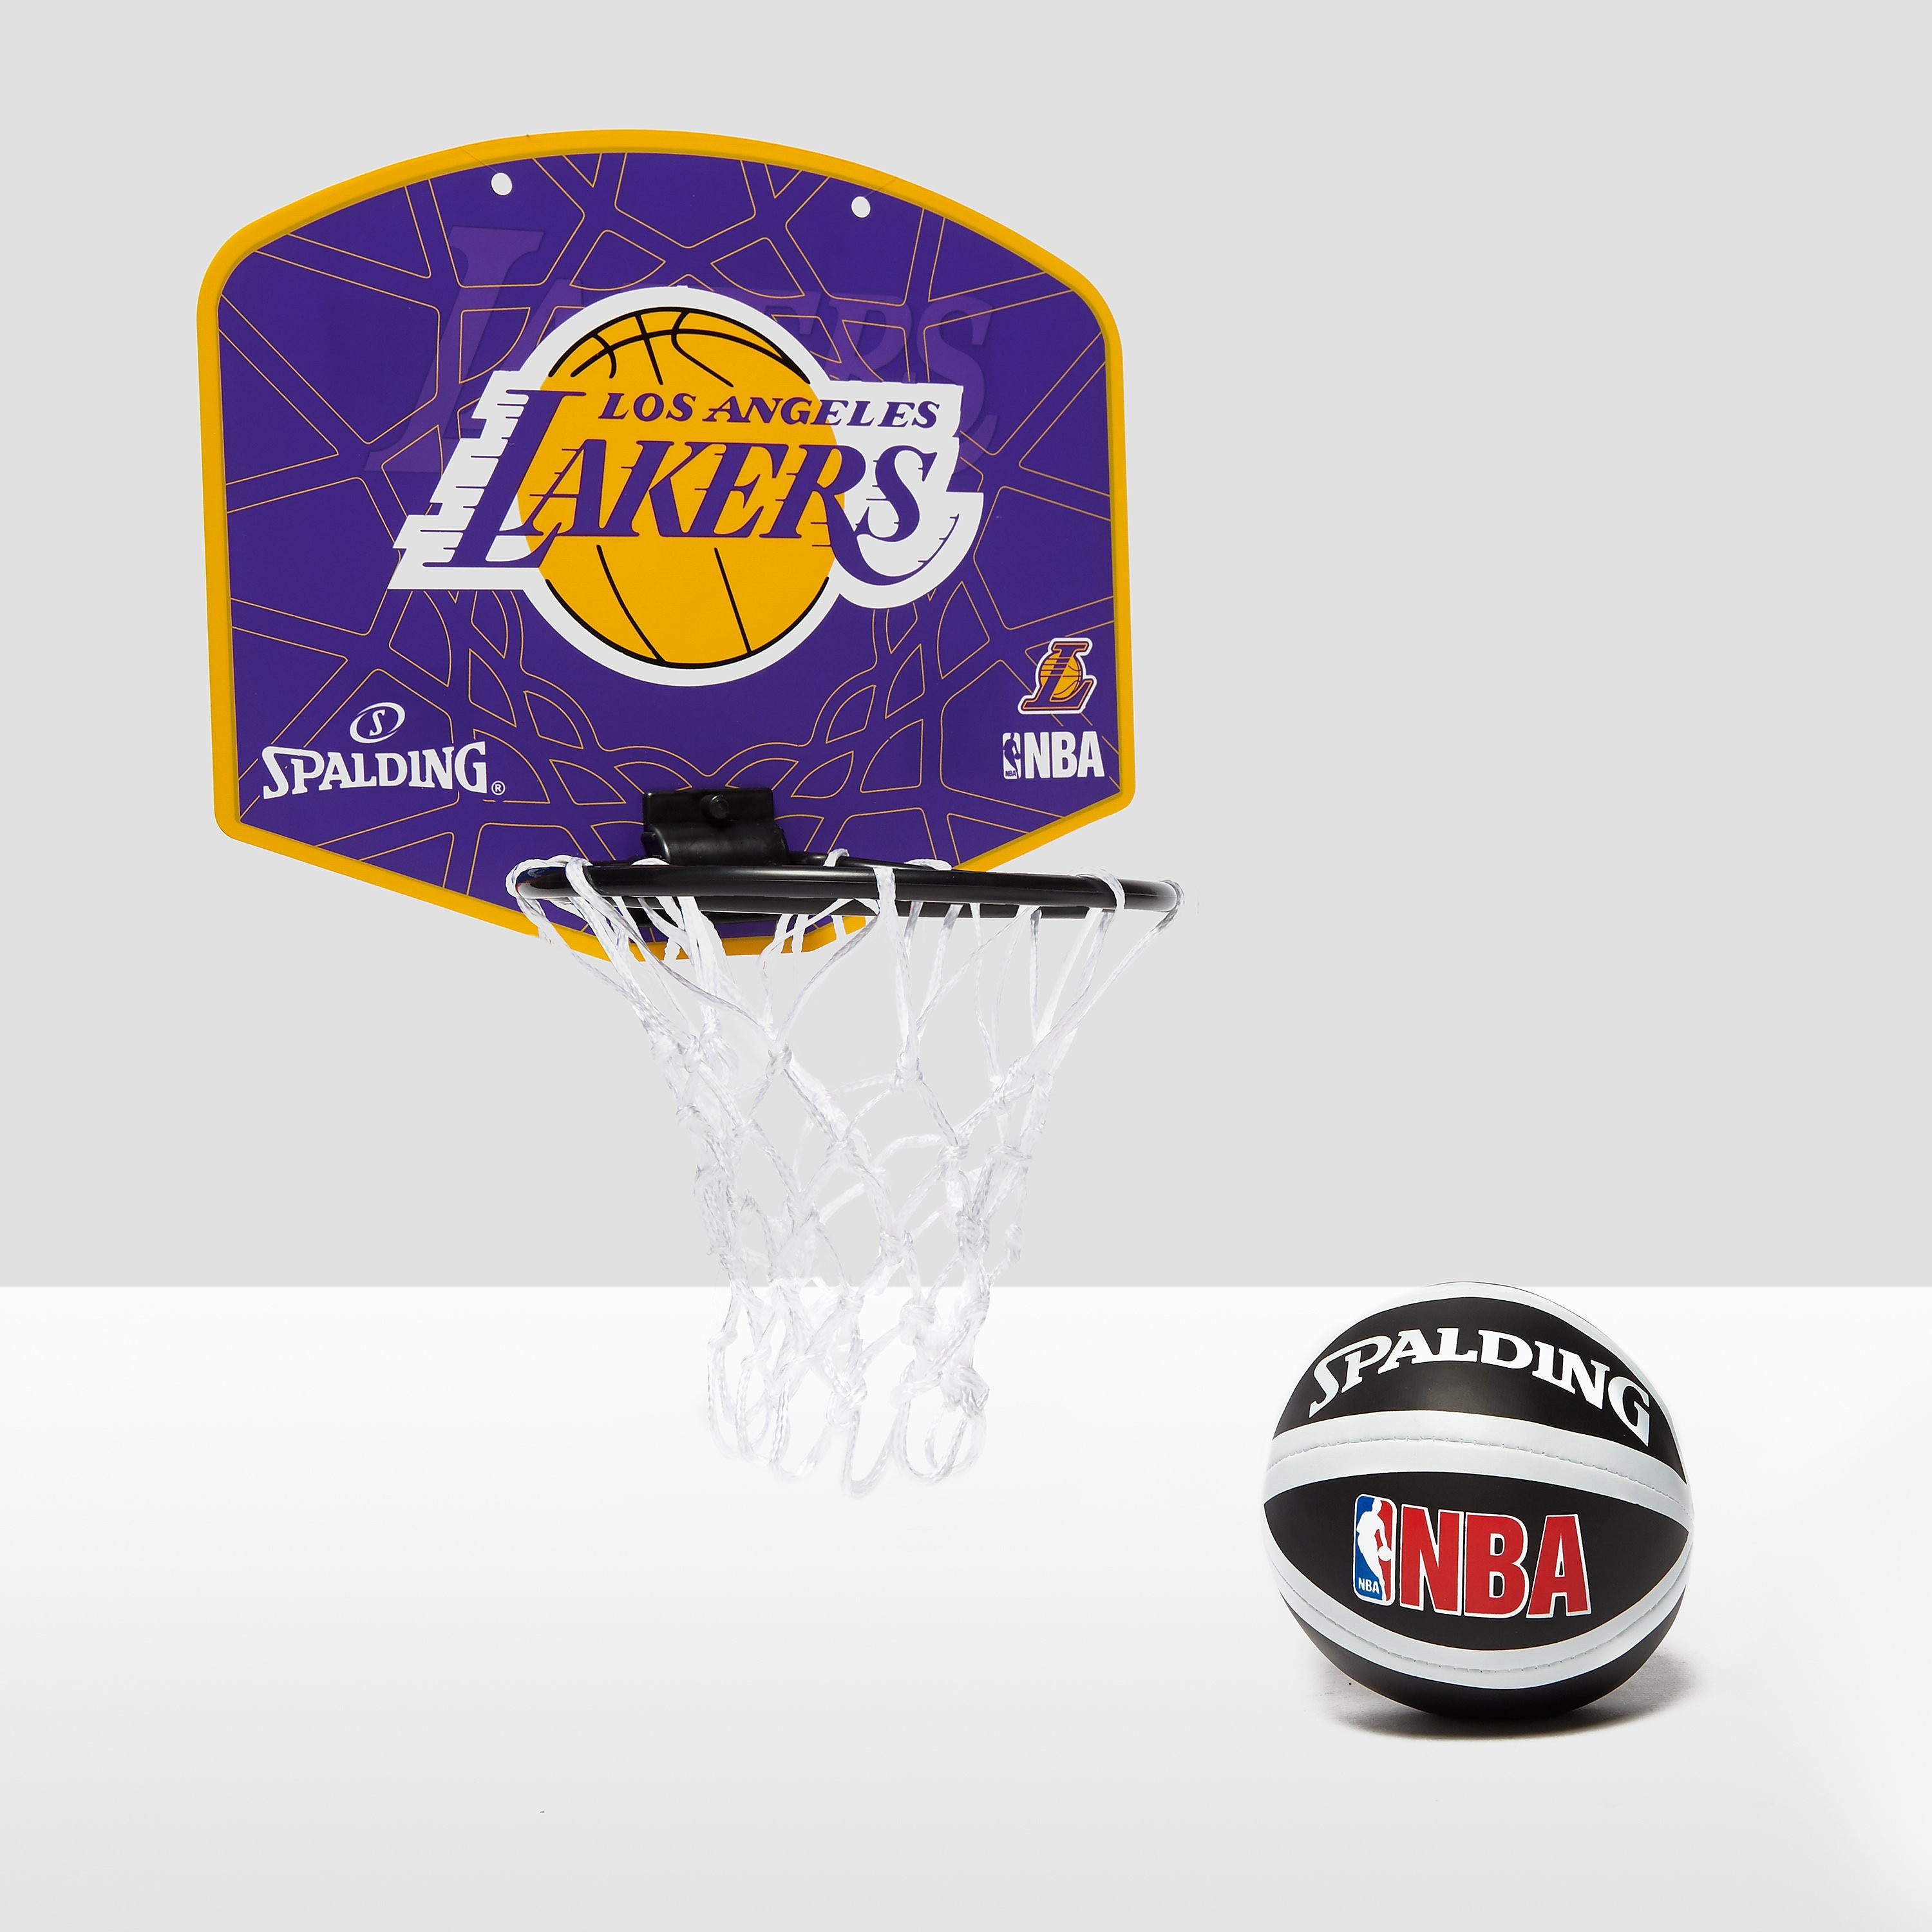 Spalding NBA LA Lakers Miniboard and Mini Ball